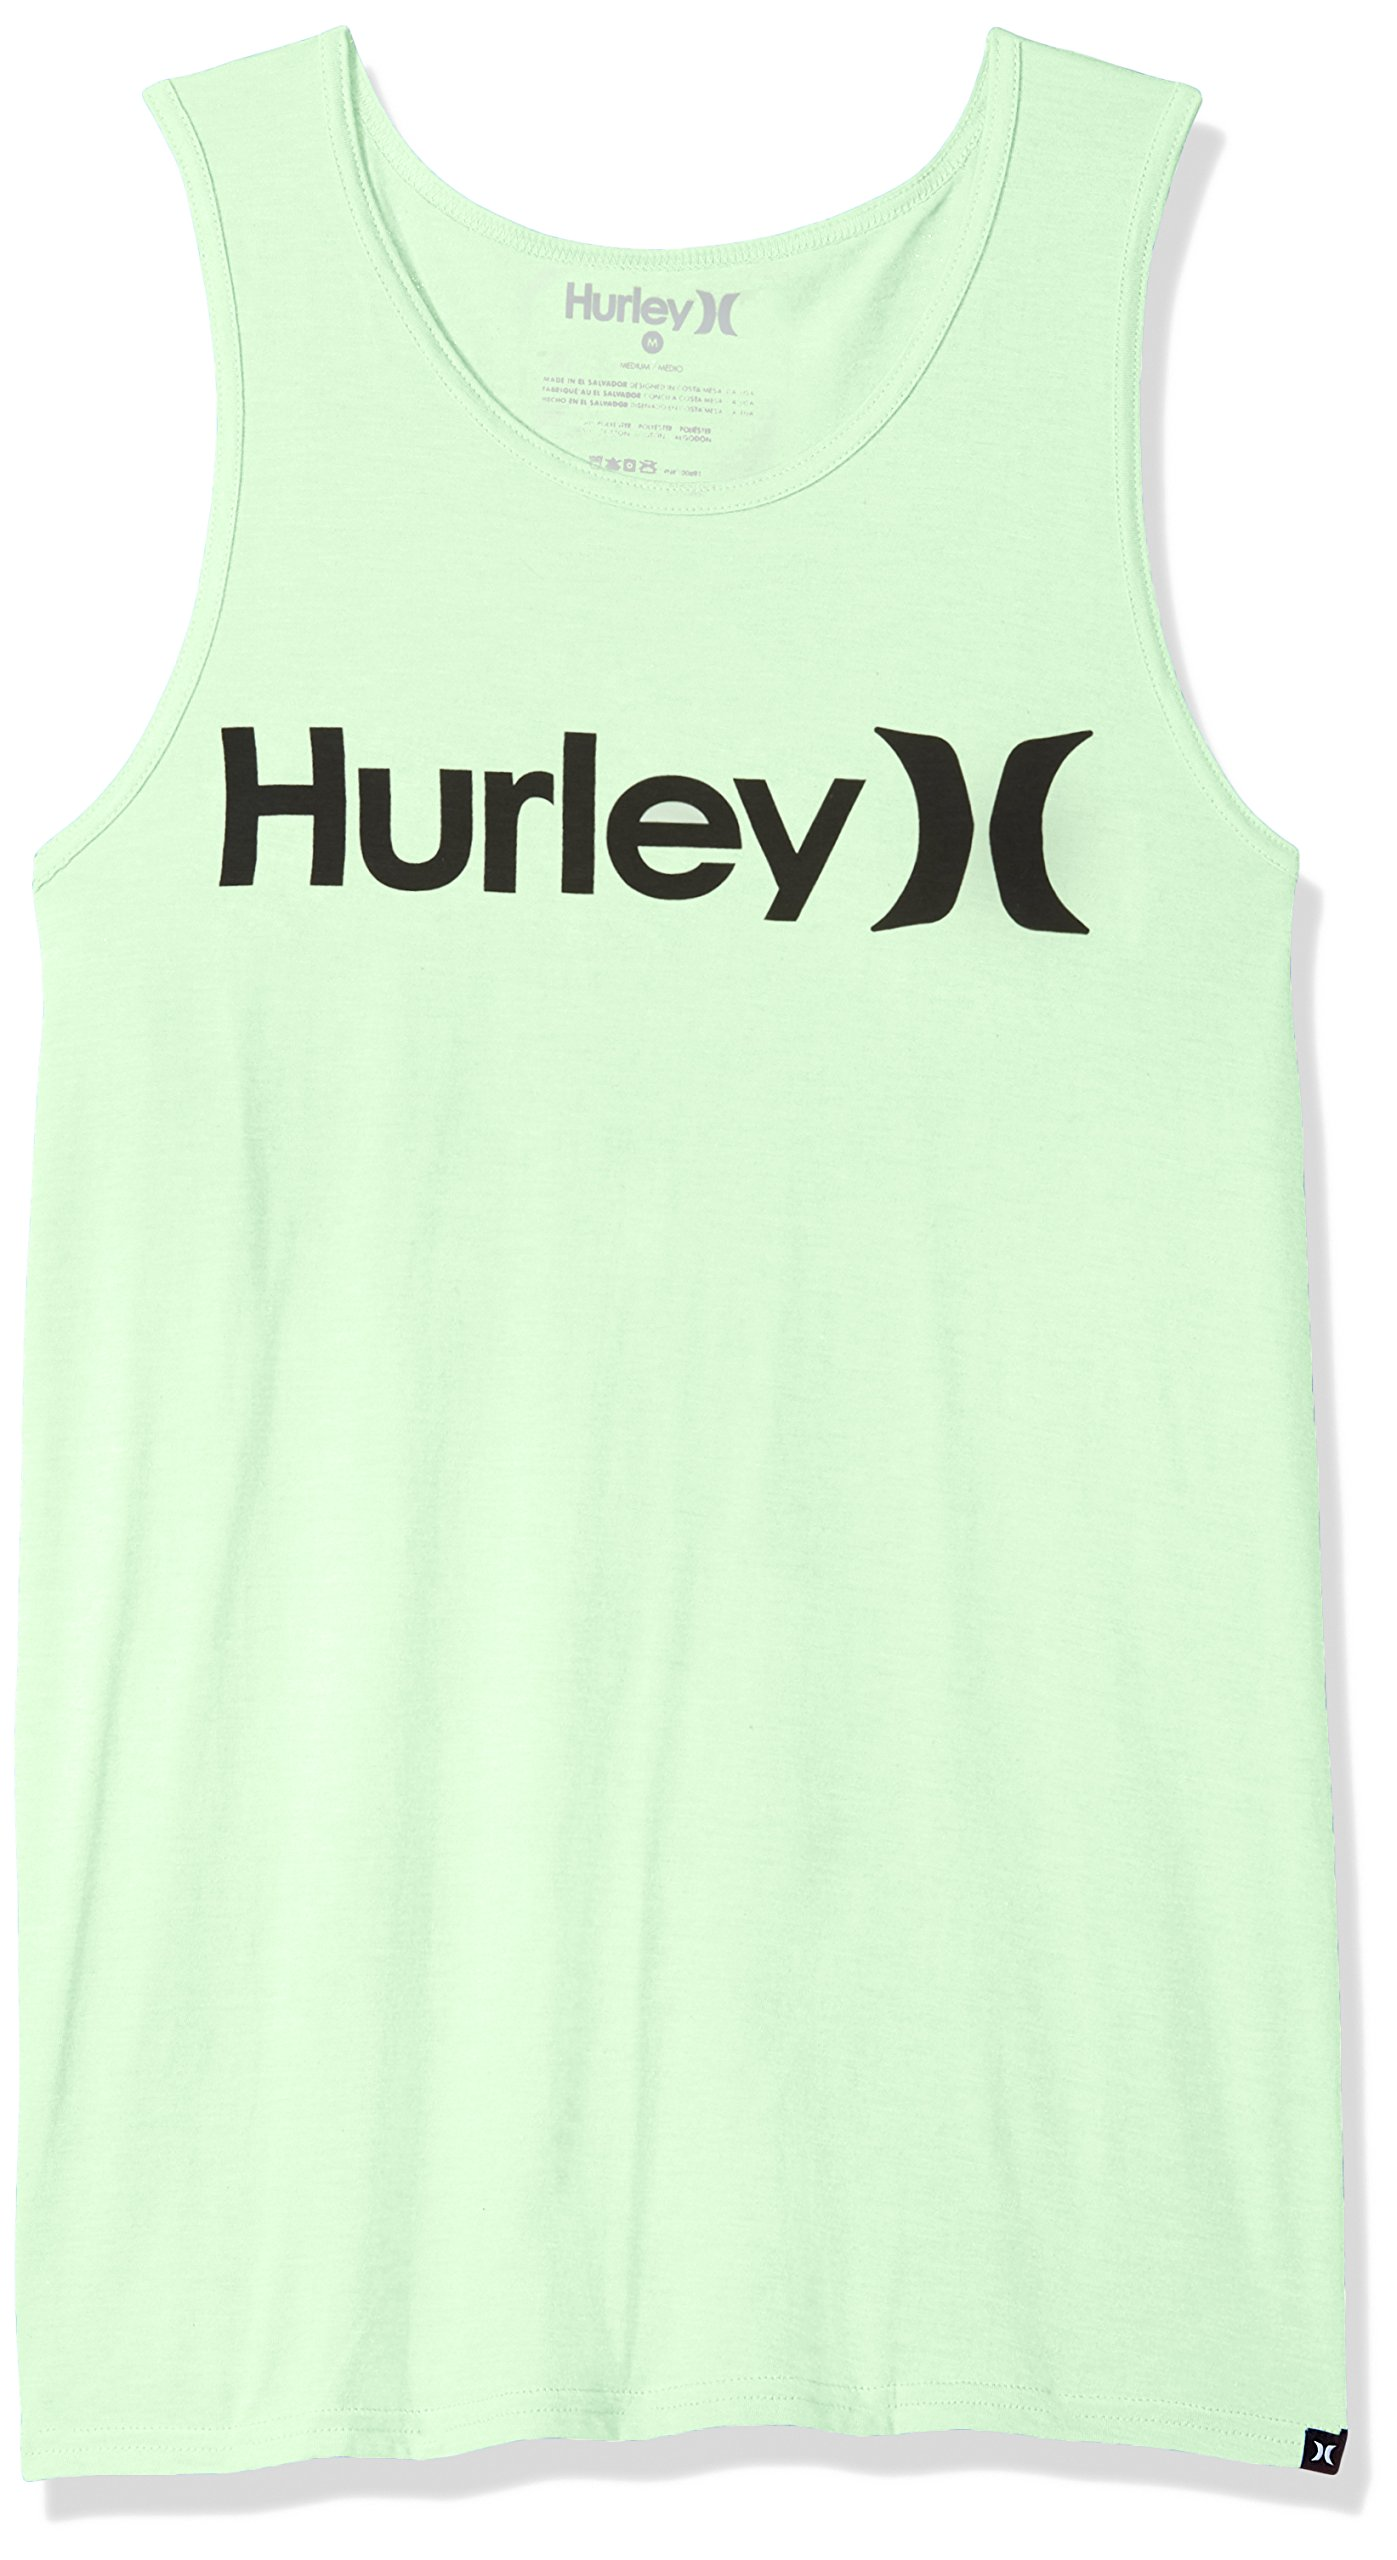 Hurley Men's One and Only Graphic Tank Top, Vapor Green Heather//Black, L